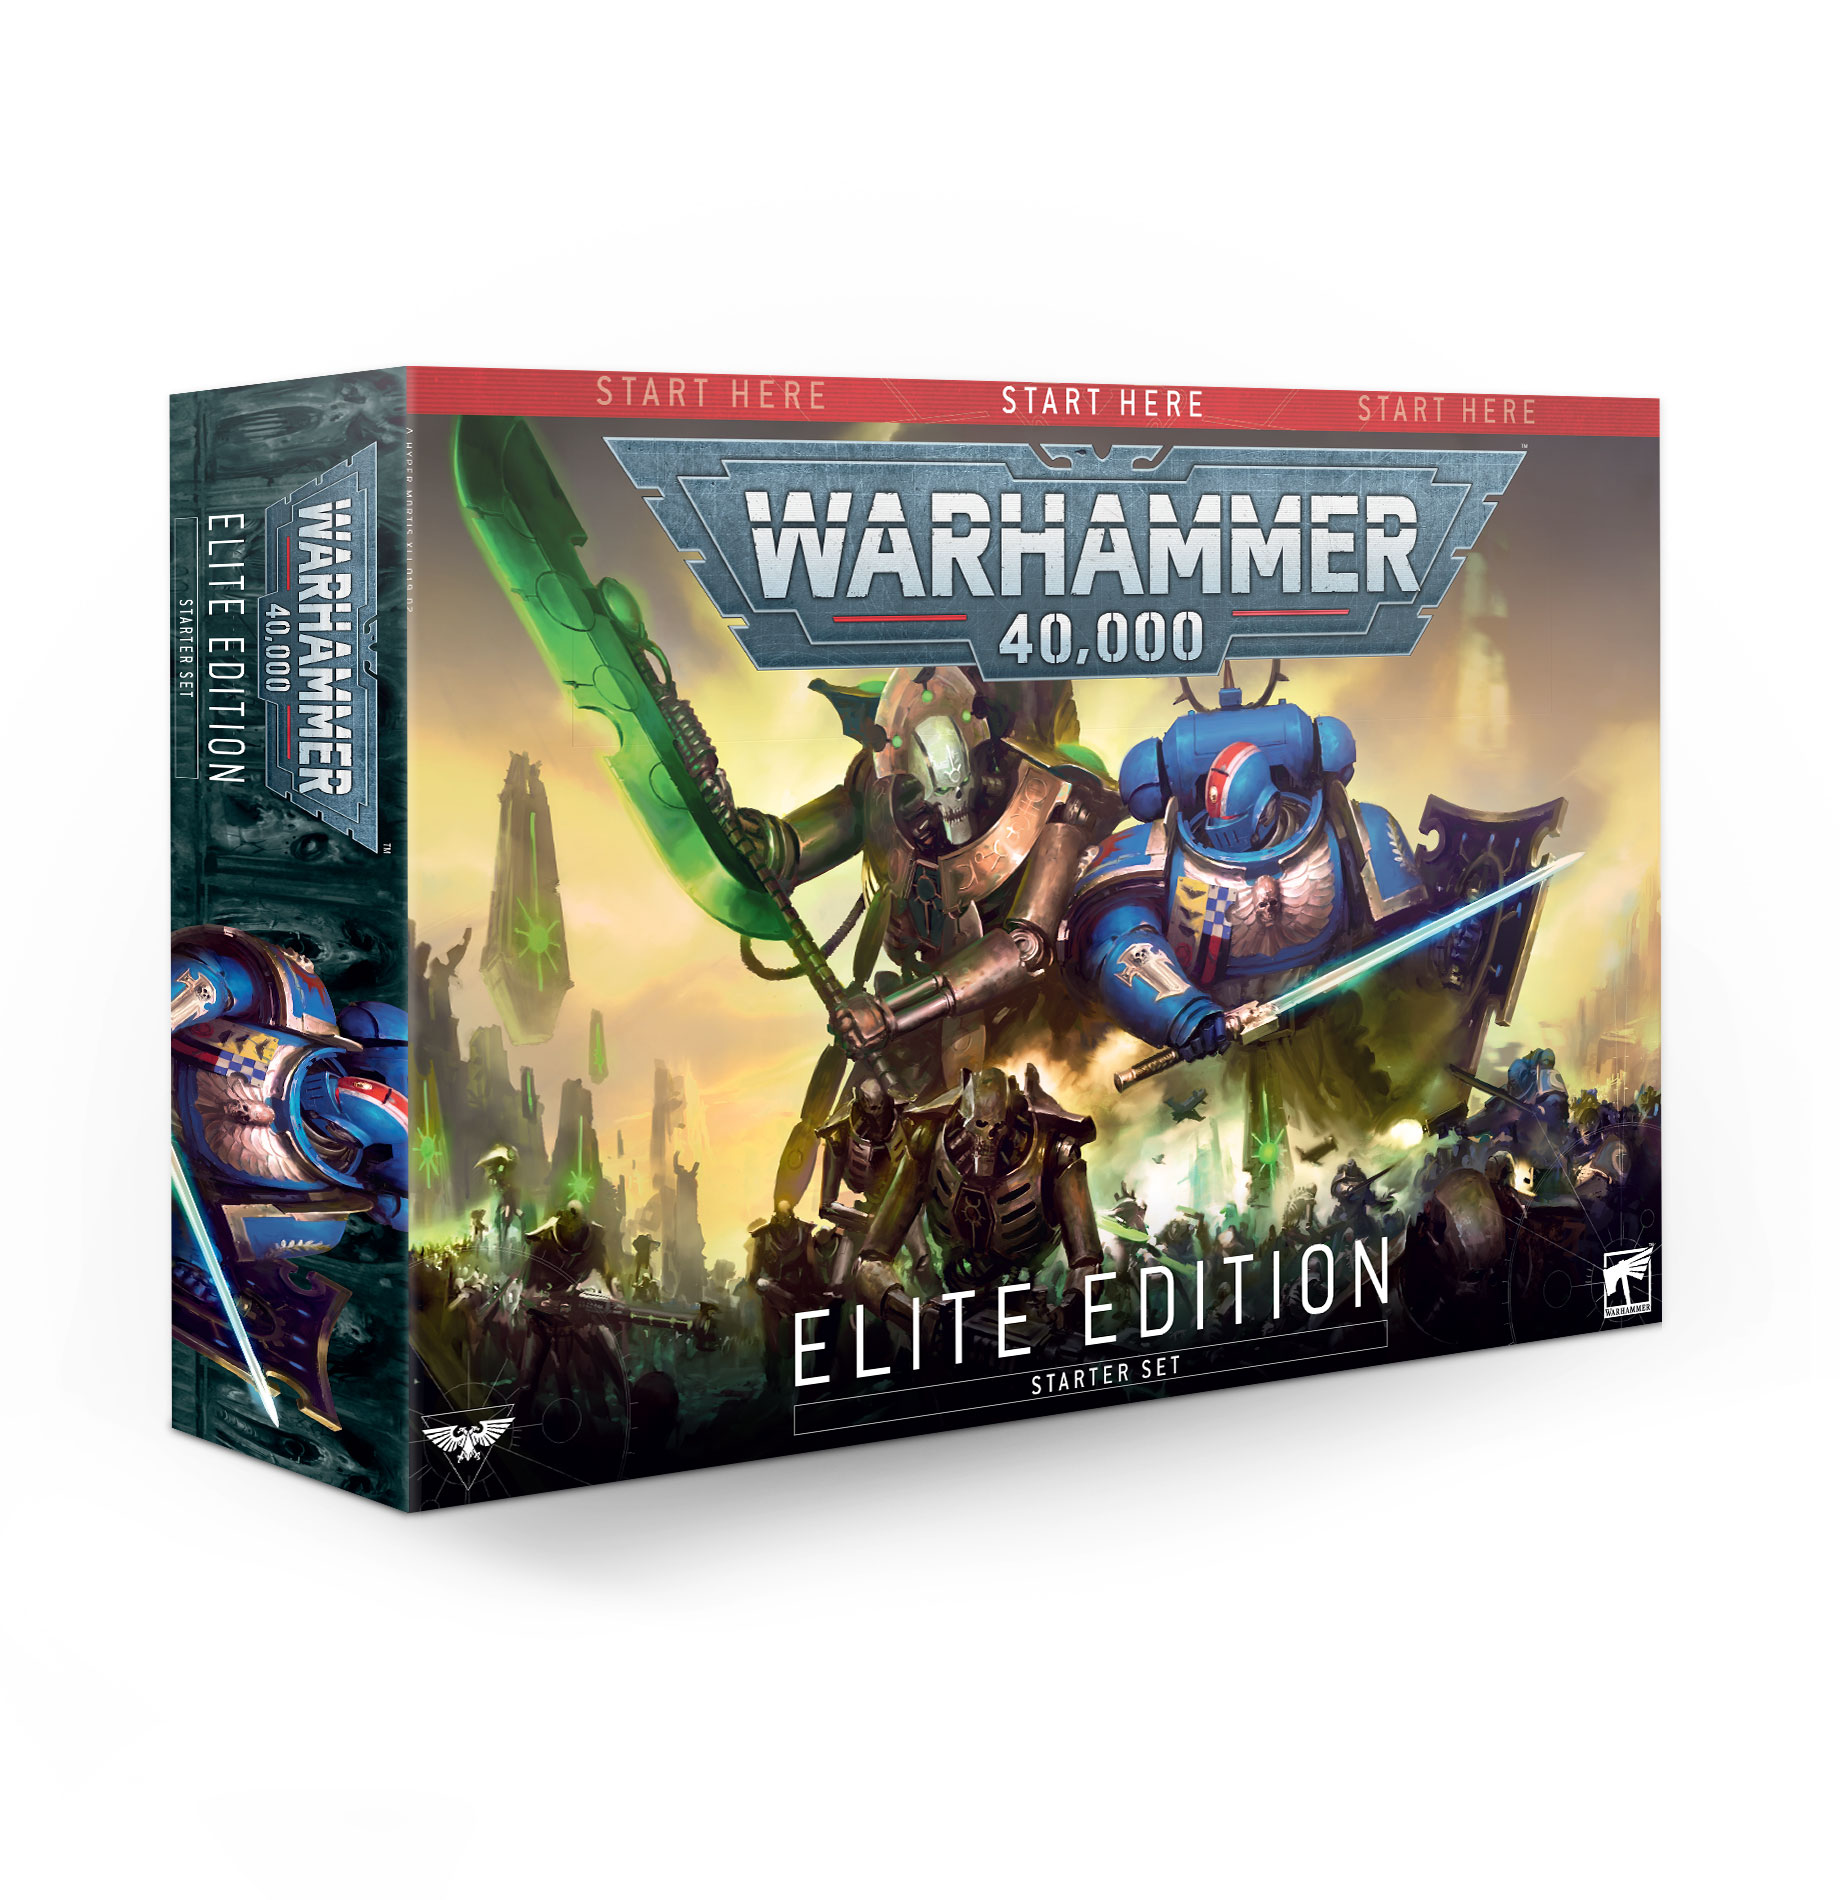 Warhammer 40,000 Elite Edition